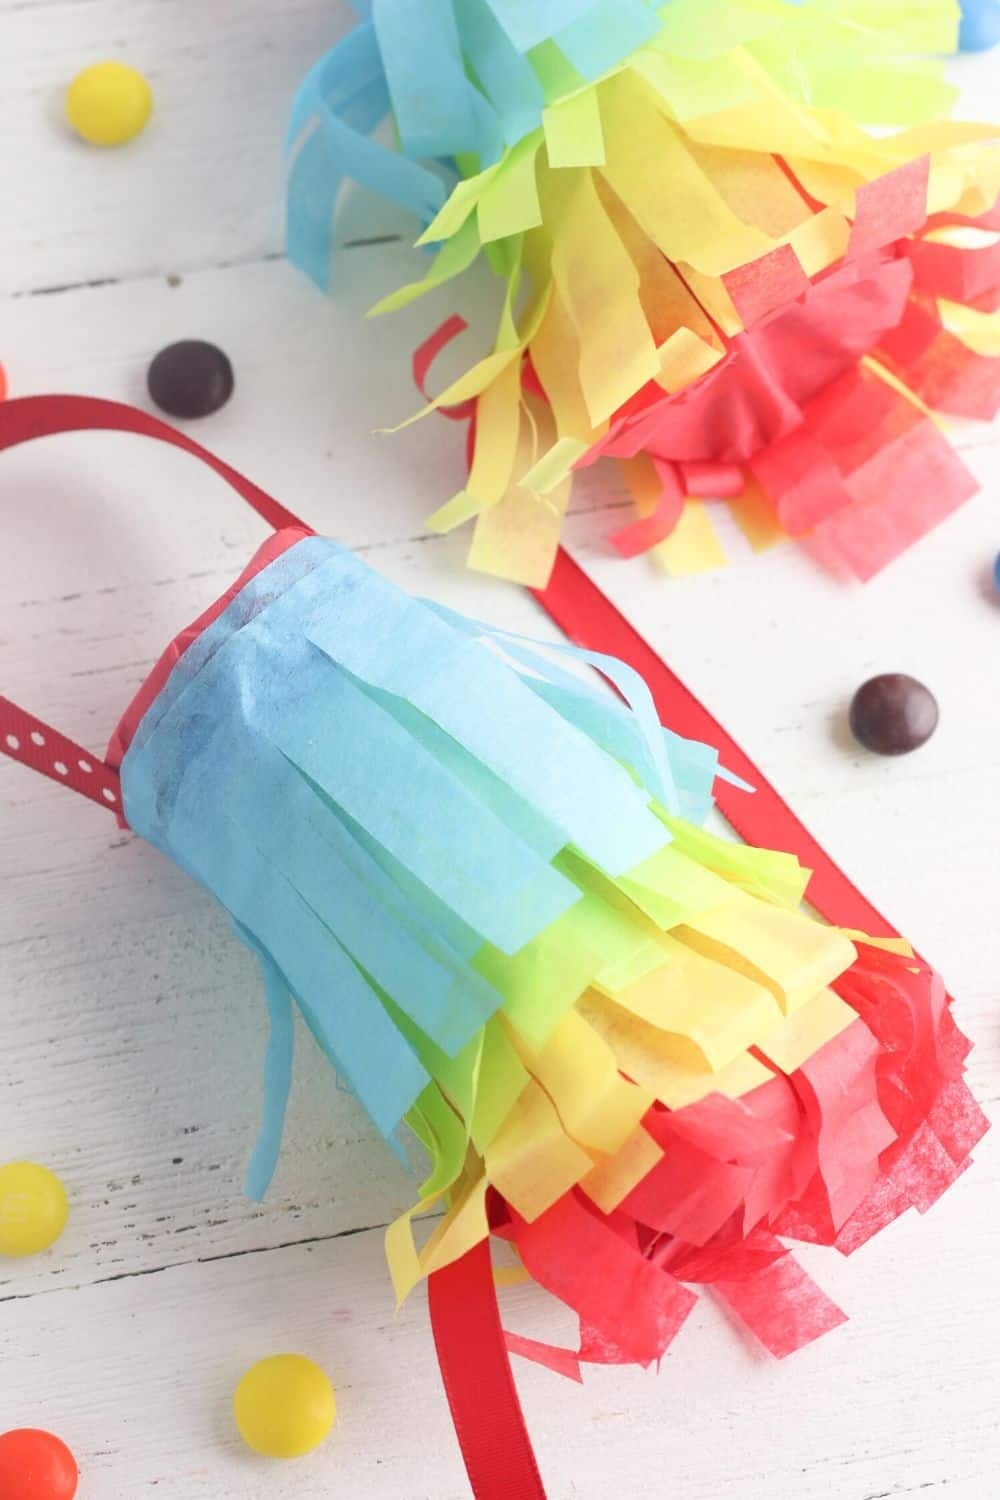 The kids can celebrate Cinco de Mayo too. These DIY Toilet Paper Roll Pinatas are a fun kid's craft project to make for your next Cinco de May fiesta. This is an easy way to recycle used toilet paper rolls too.